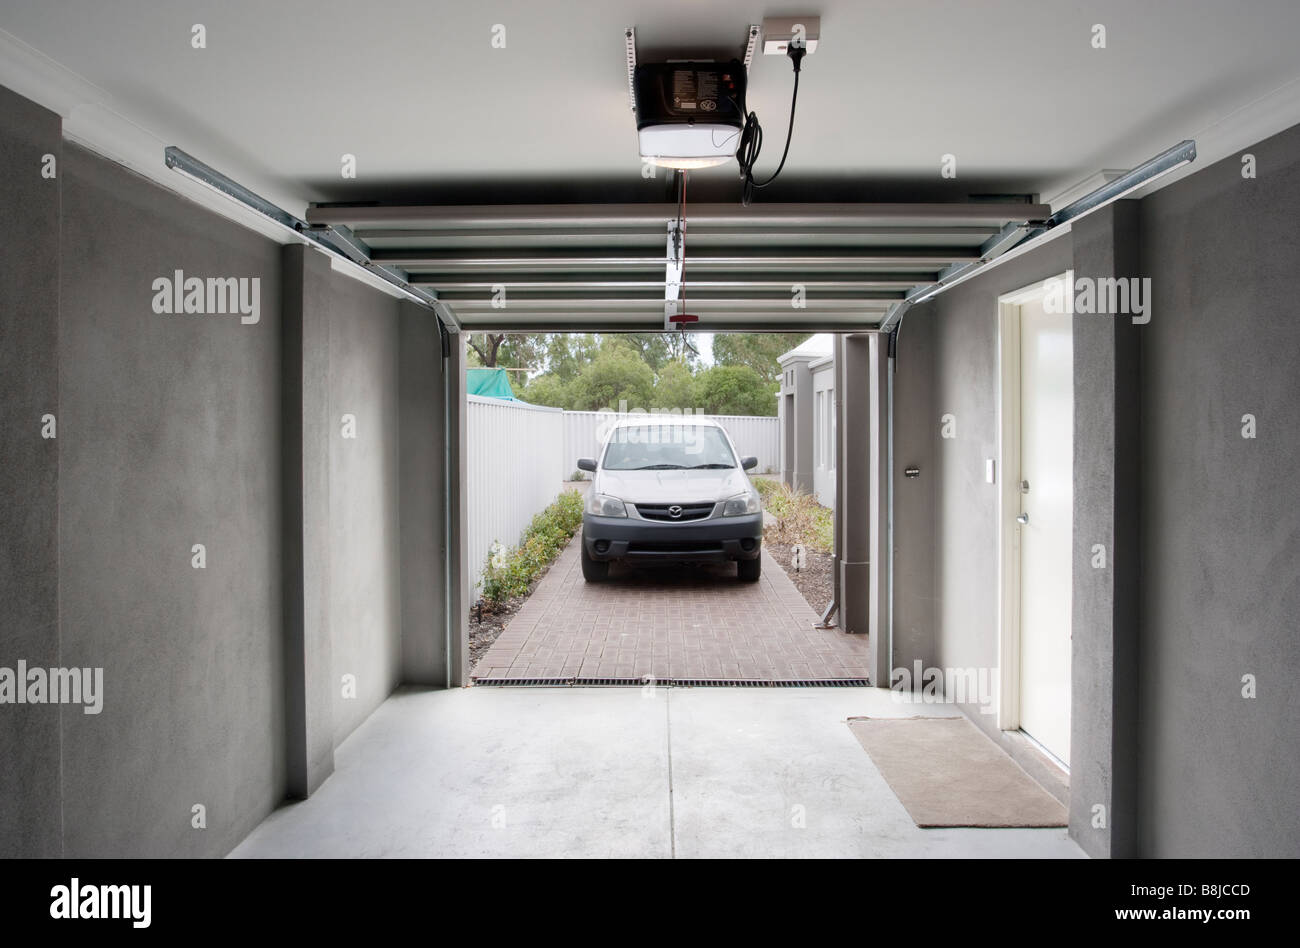 A Car Driving Into A Garage With An Automatic Garage Door Make Your Own Beautiful  HD Wallpapers, Images Over 1000+ [ralydesign.ml]